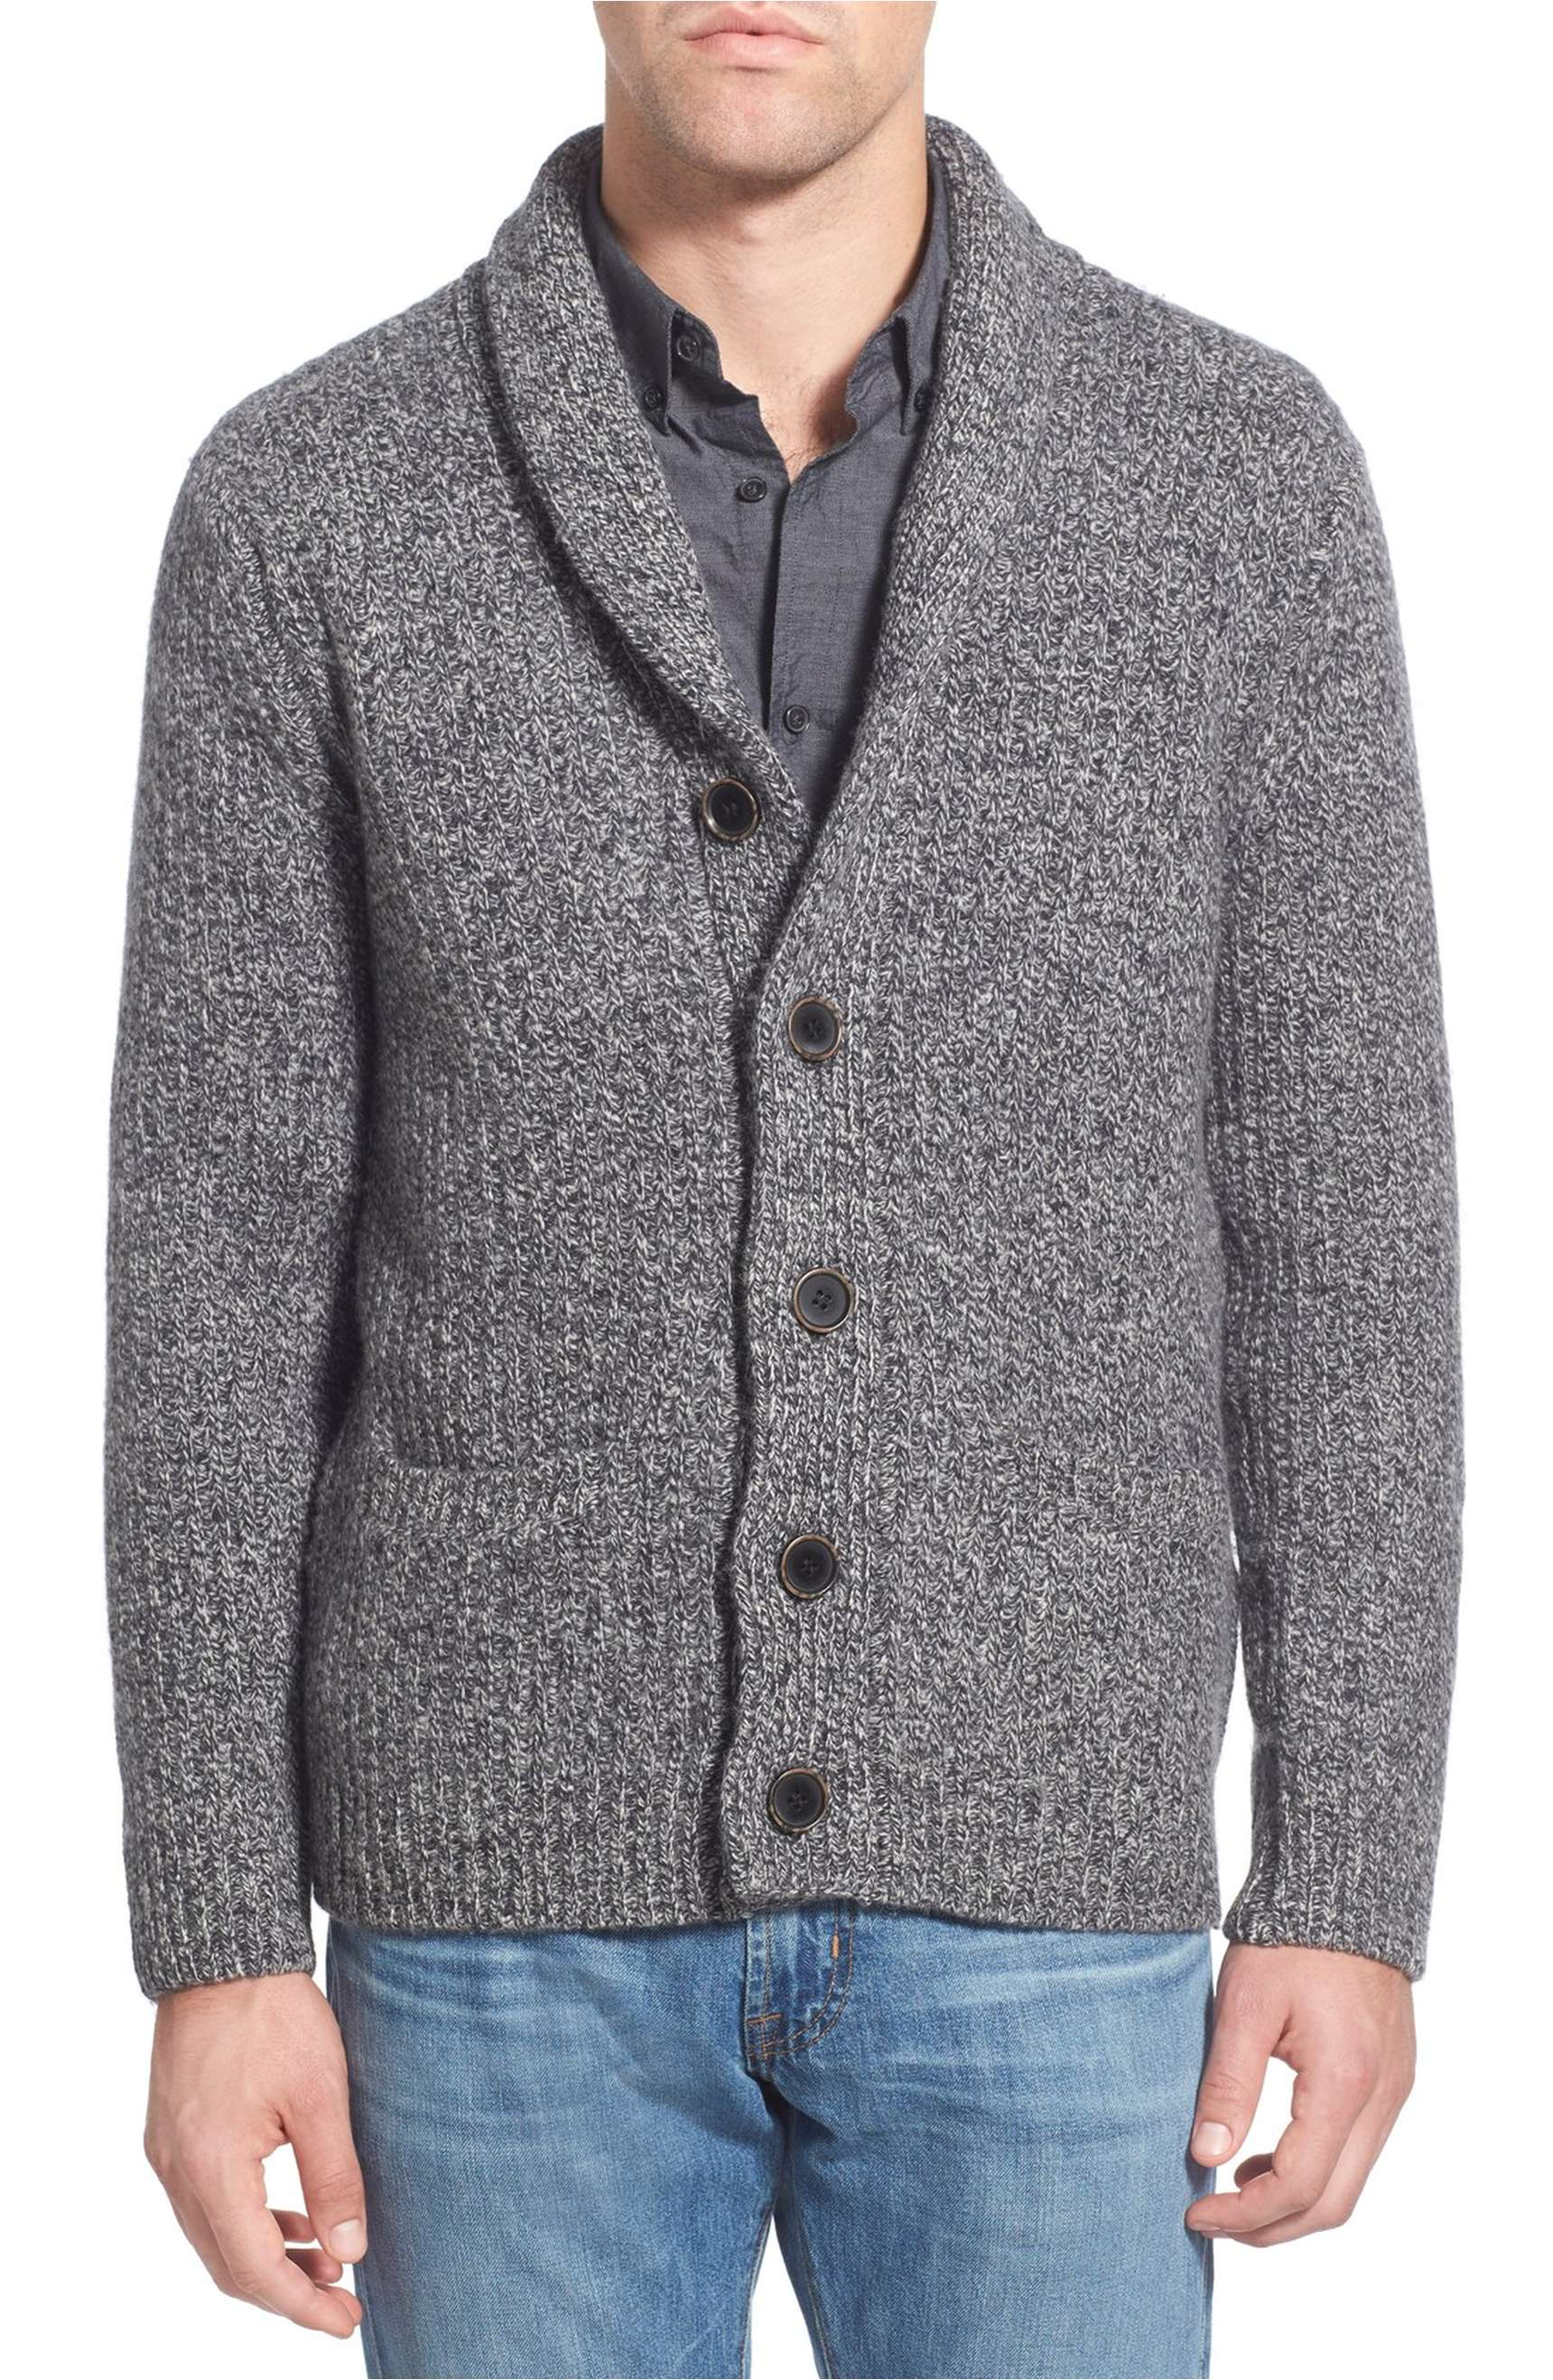 11 Best Sweaters for Men 2018 - Men's Cardigans, V-Necks, Cashmere ...